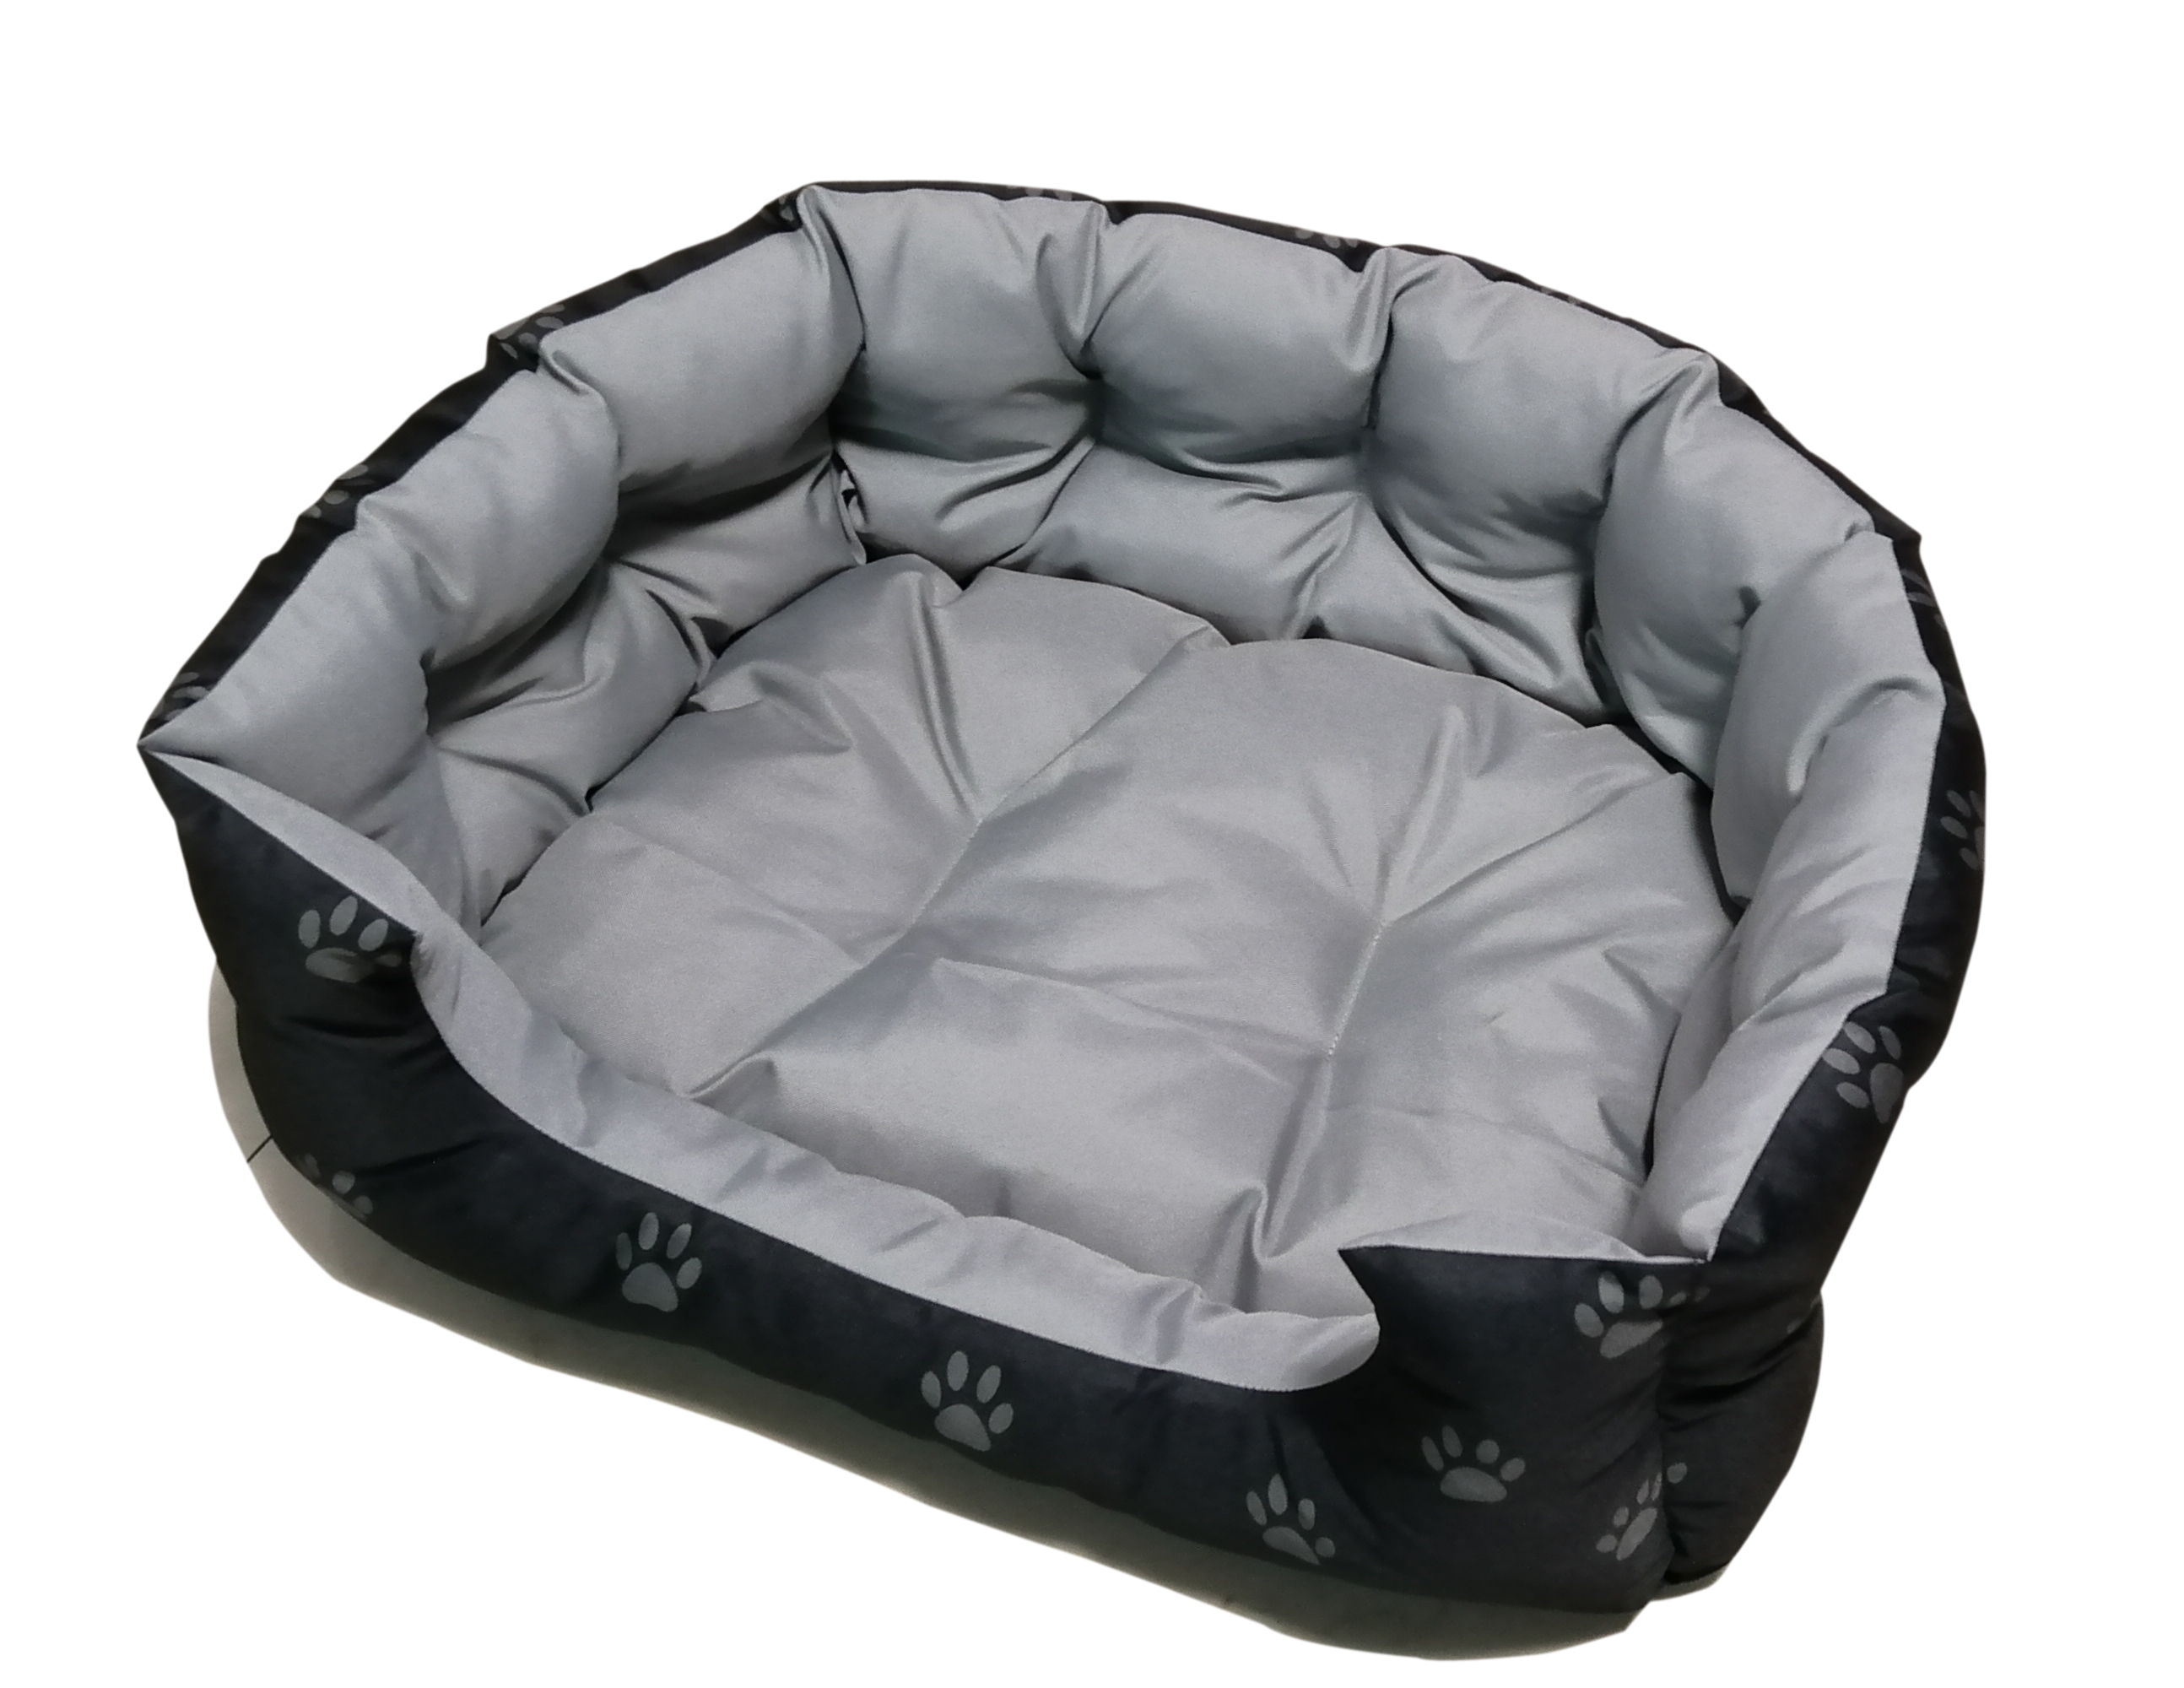 DOG BED BLK 55X45X20CM